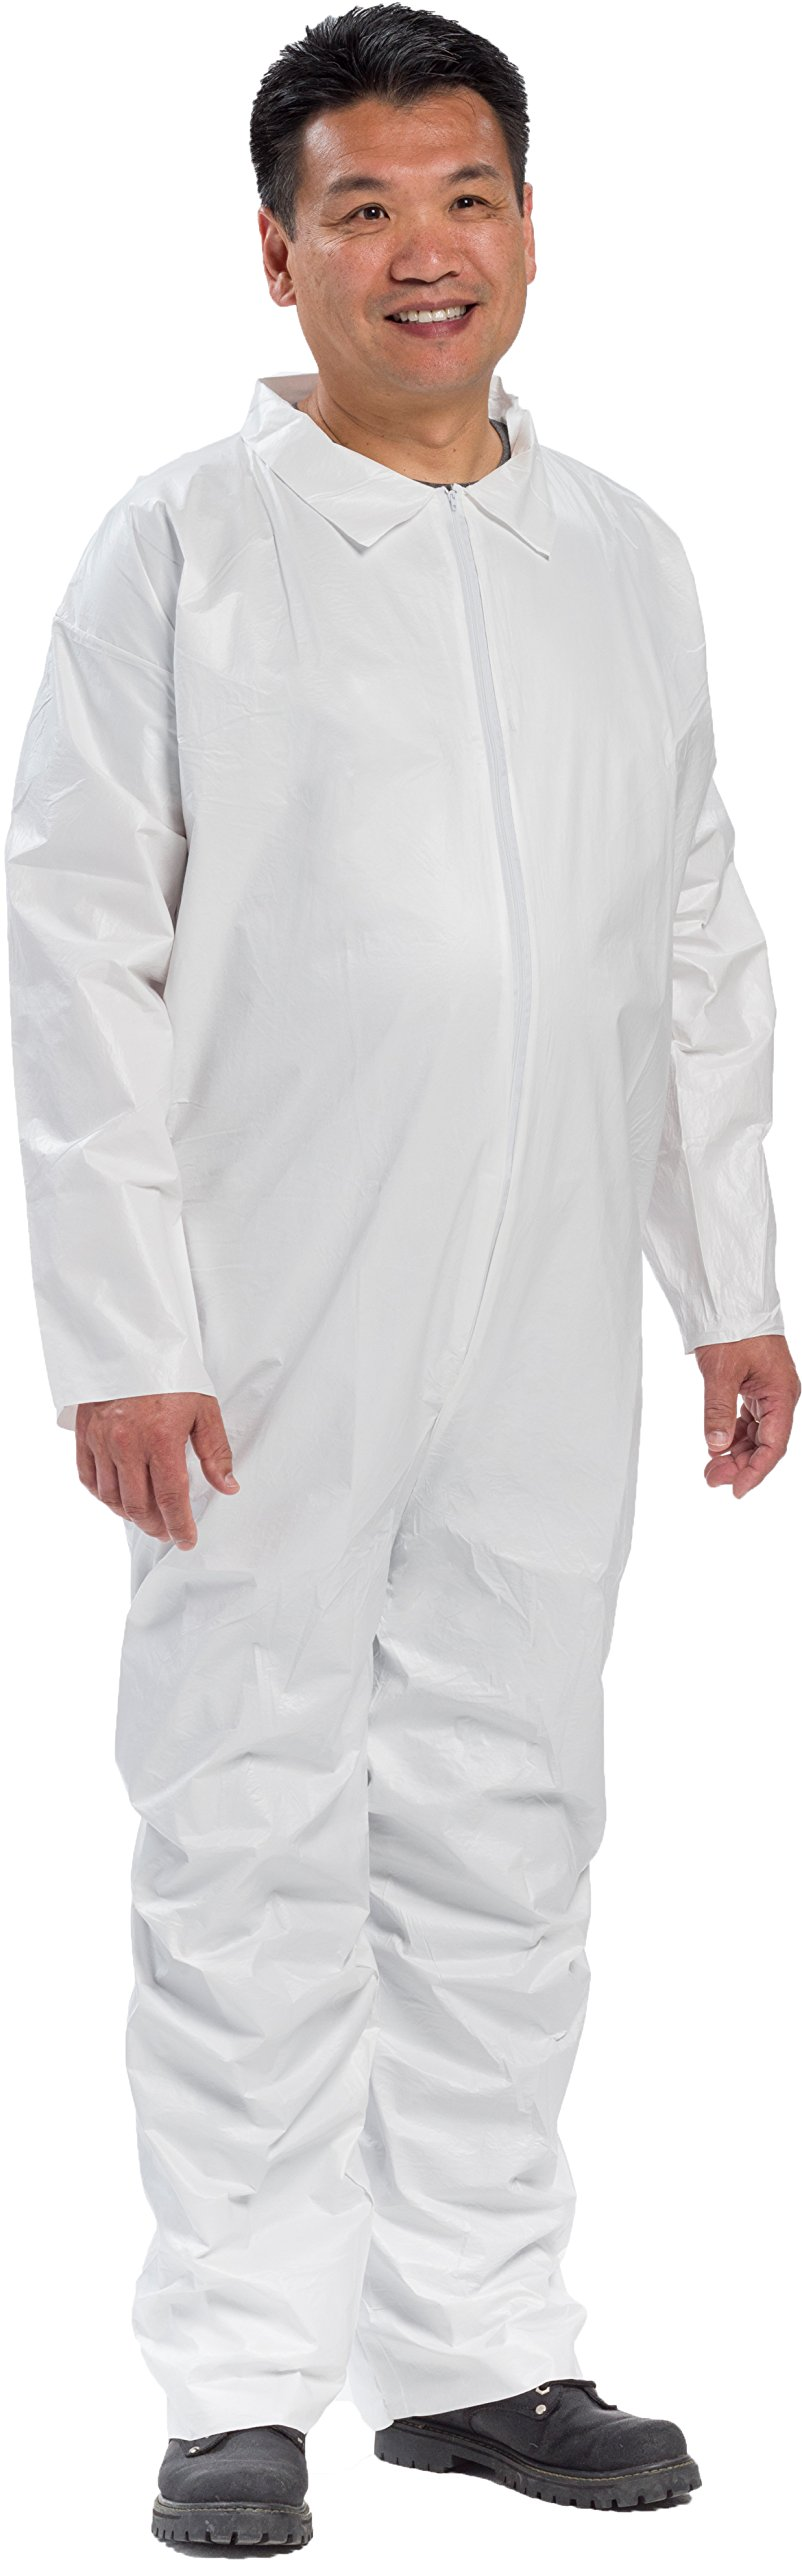 West Chester 3400/2XL PE Laminate Basic Coverall, 2XL, White (Box of 25) by West Chester (Image #1)